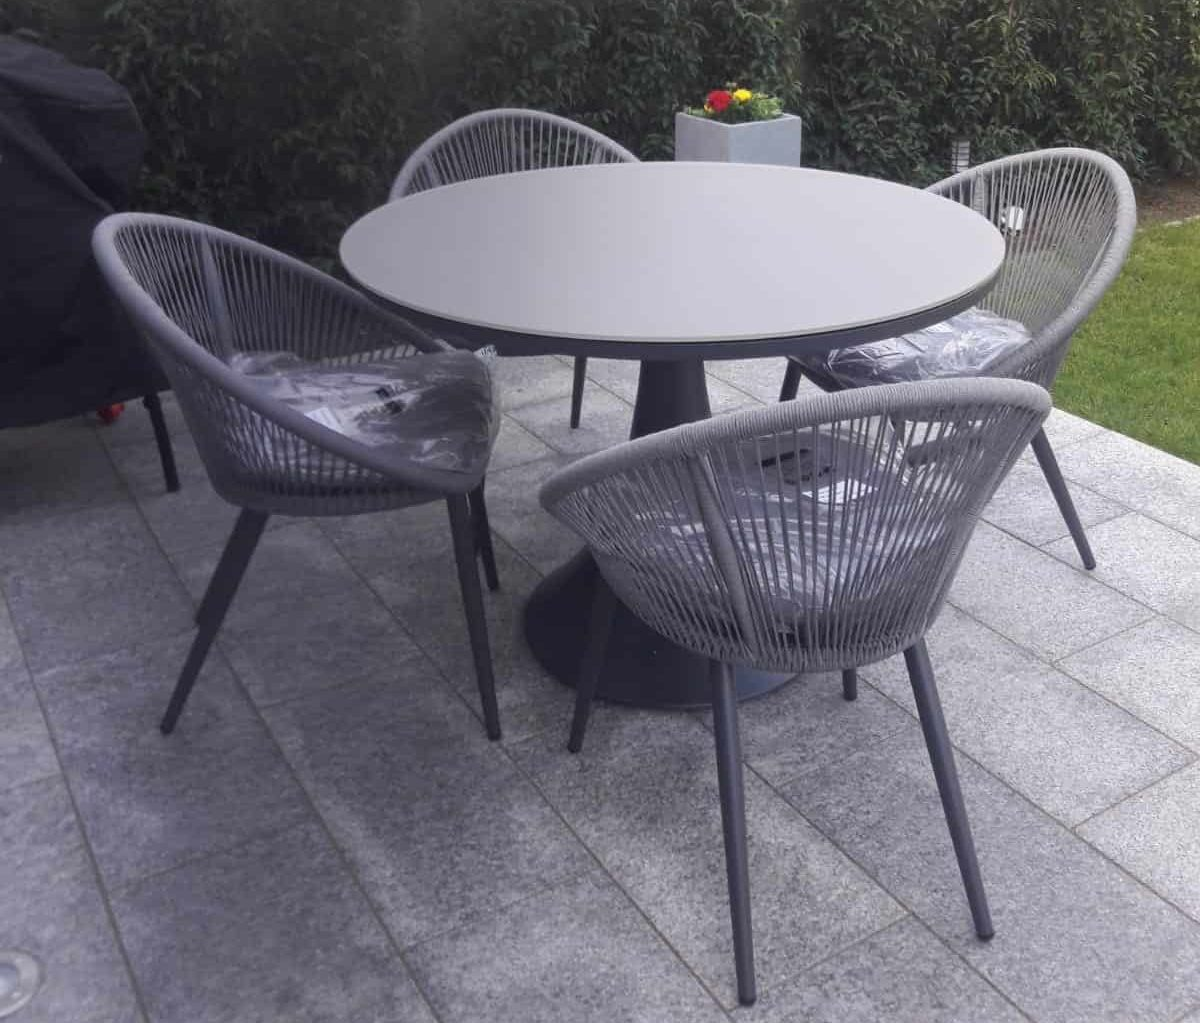 Fano round glass table with 4 spade chairs3 outdoor furniture for sale dublin ireland